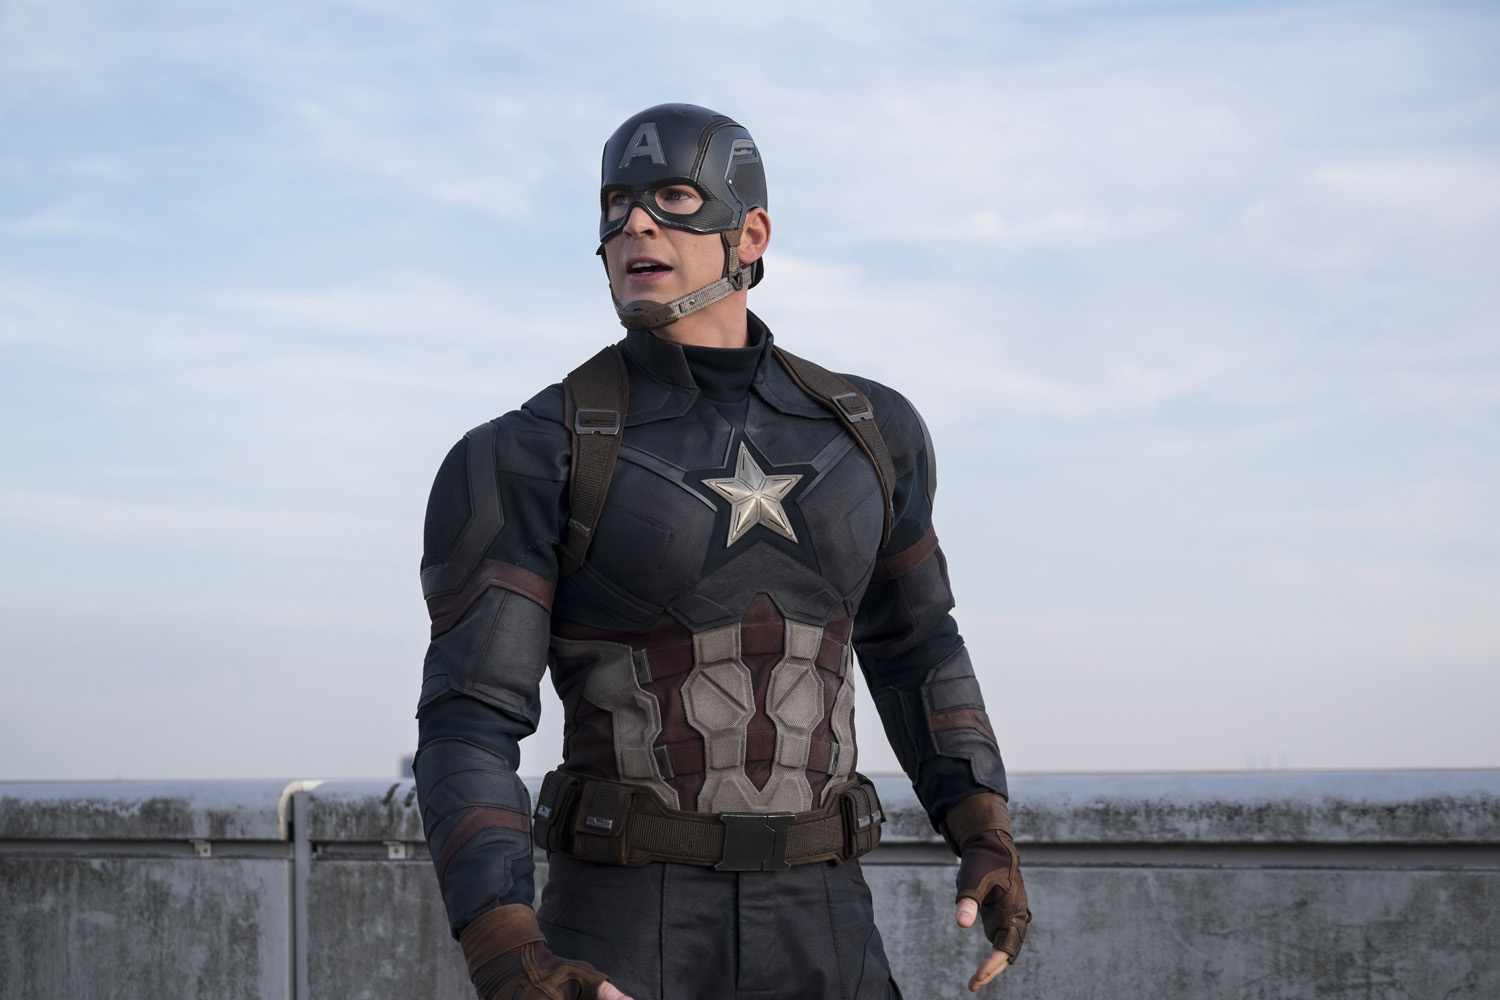 BIGGEST OPENING WEEKEND. 'Captain America: Civil War' posts a new record in Philippine box office history for earning P362 million in its first 5 days in cinemas. Photo by Zade Rosenthal/Marvel, courtesy of Walt Disney Motion Pictures